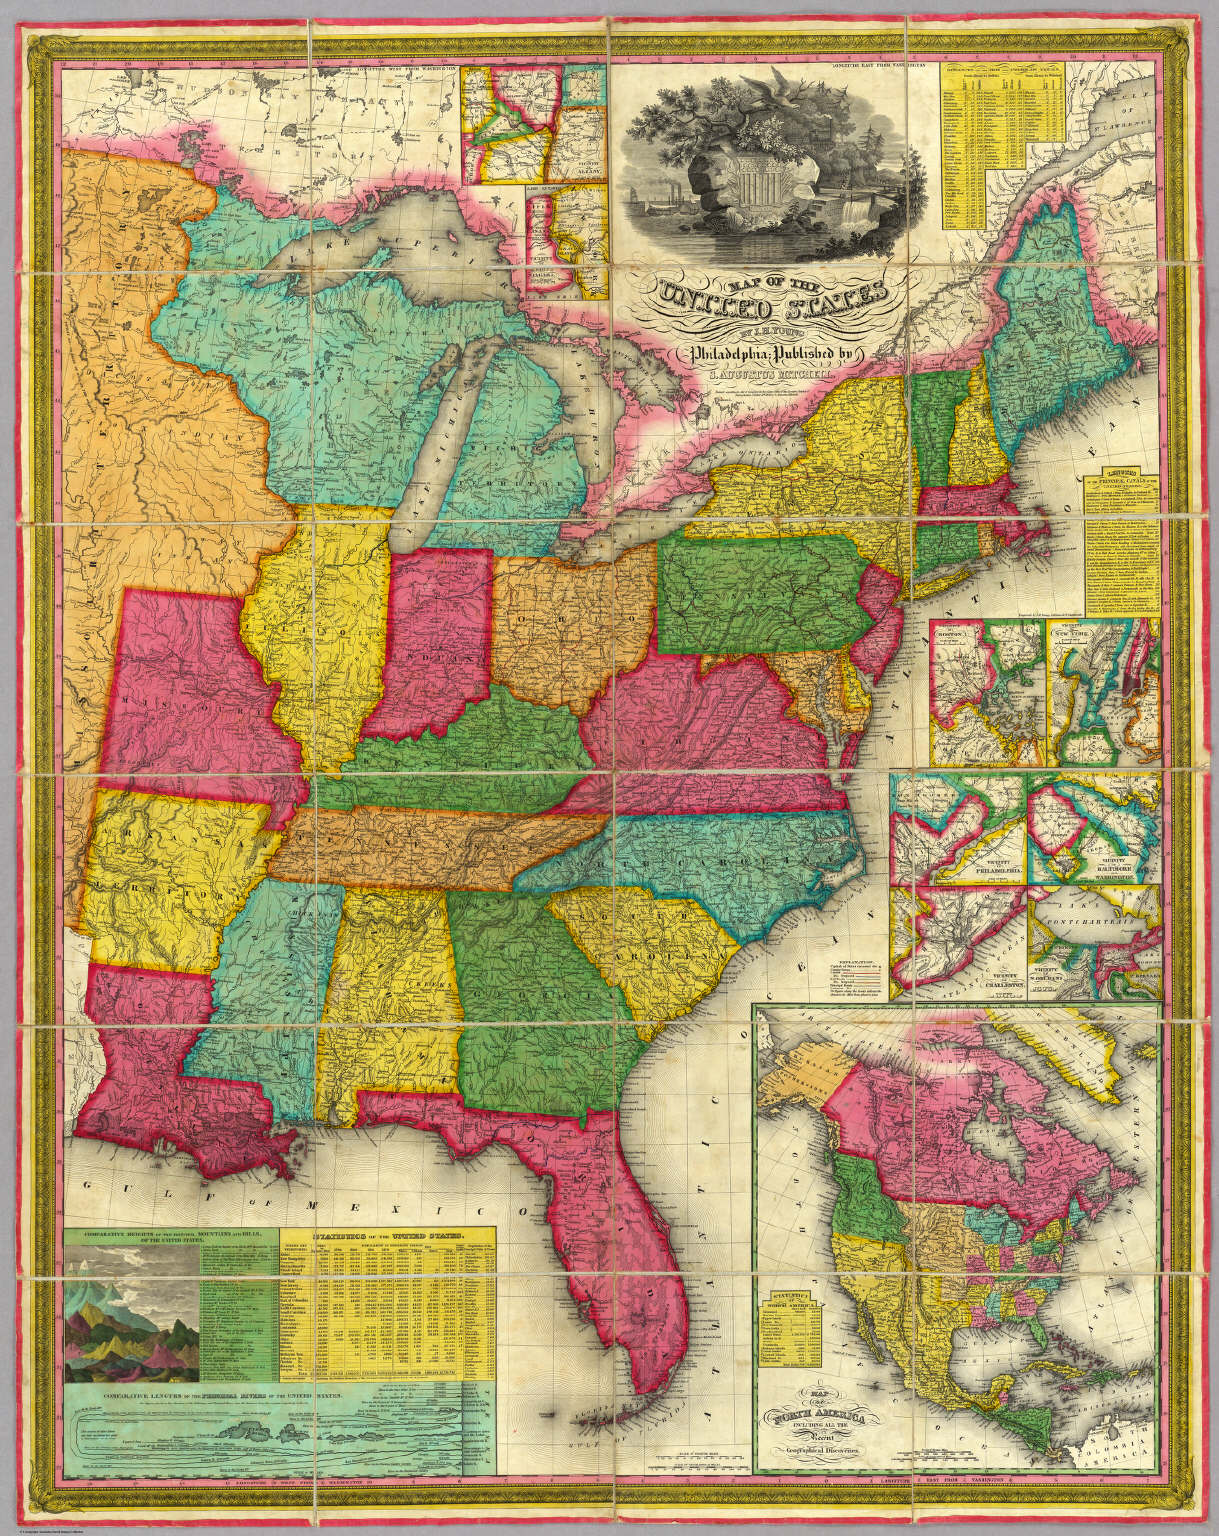 Map of the United States. - David Rumsey Historical Map Collection